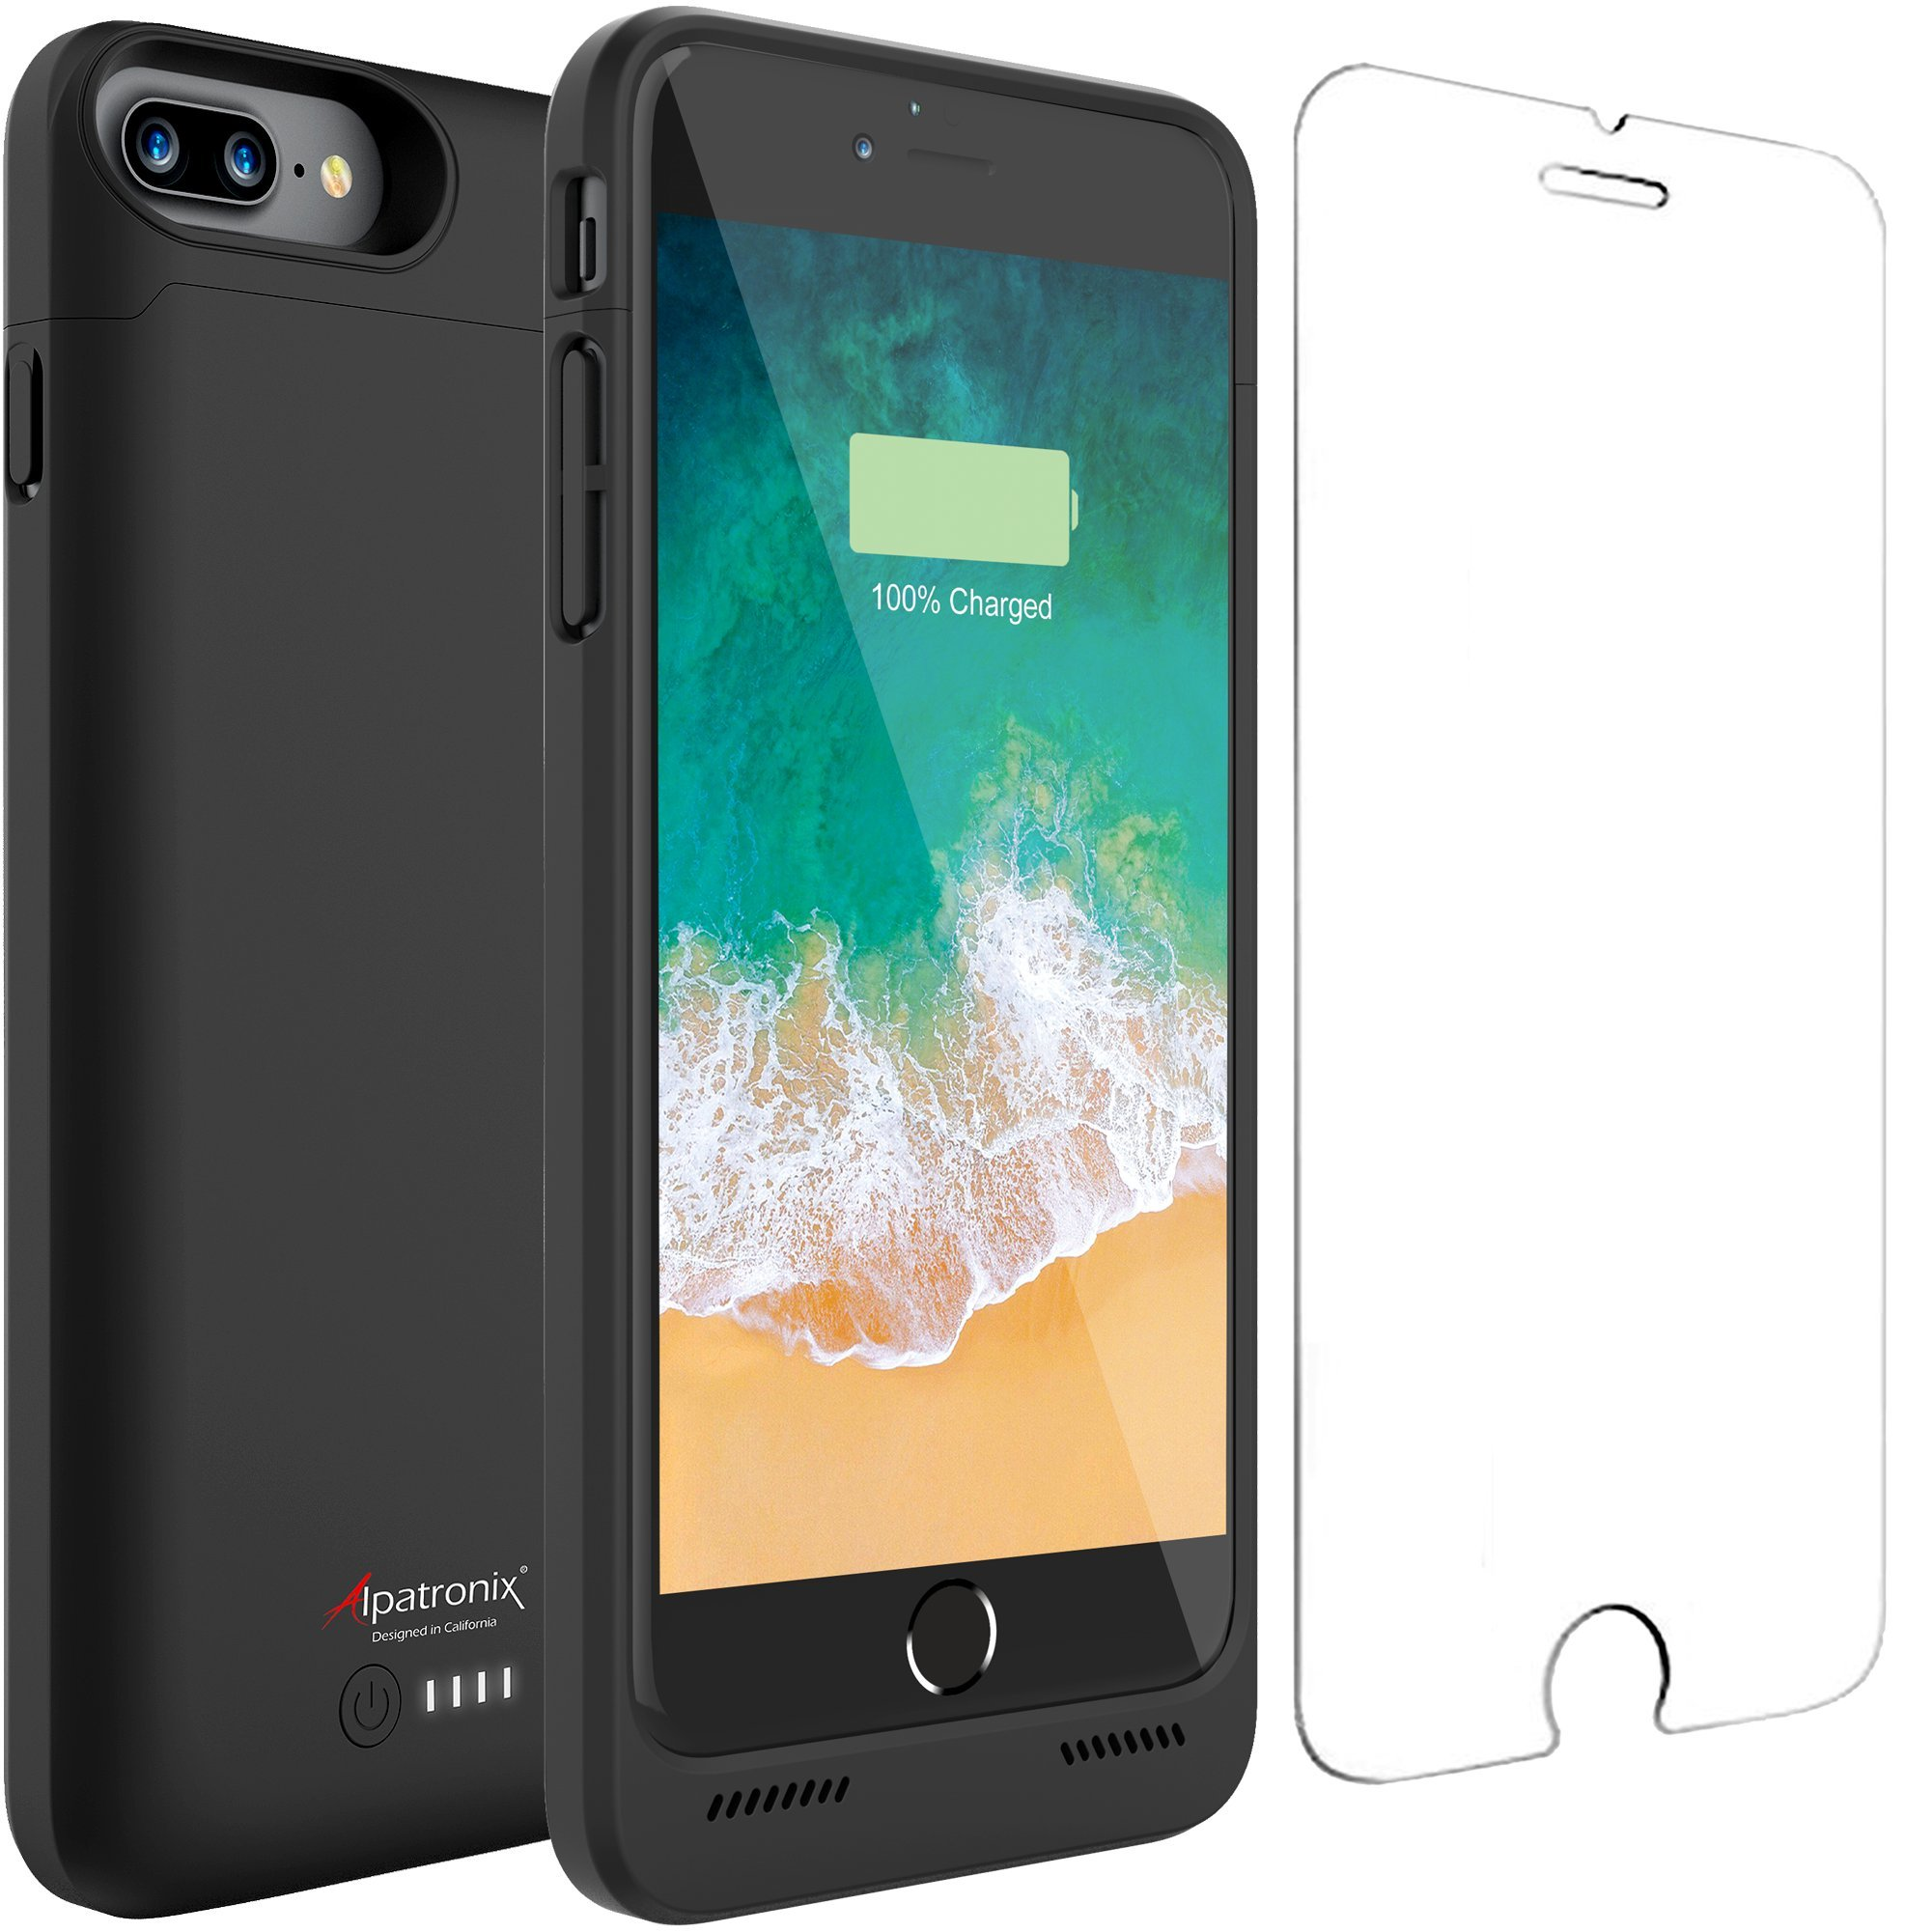 iPhone 7 Plus Battery Case, Alpatronix BX180plus 5.5-inch 5000mAh Slim External Rechargeable Extended Protective Portable Charging Case & Charger Cover for iPhone 7+ [Apple Certified Chip] - Black